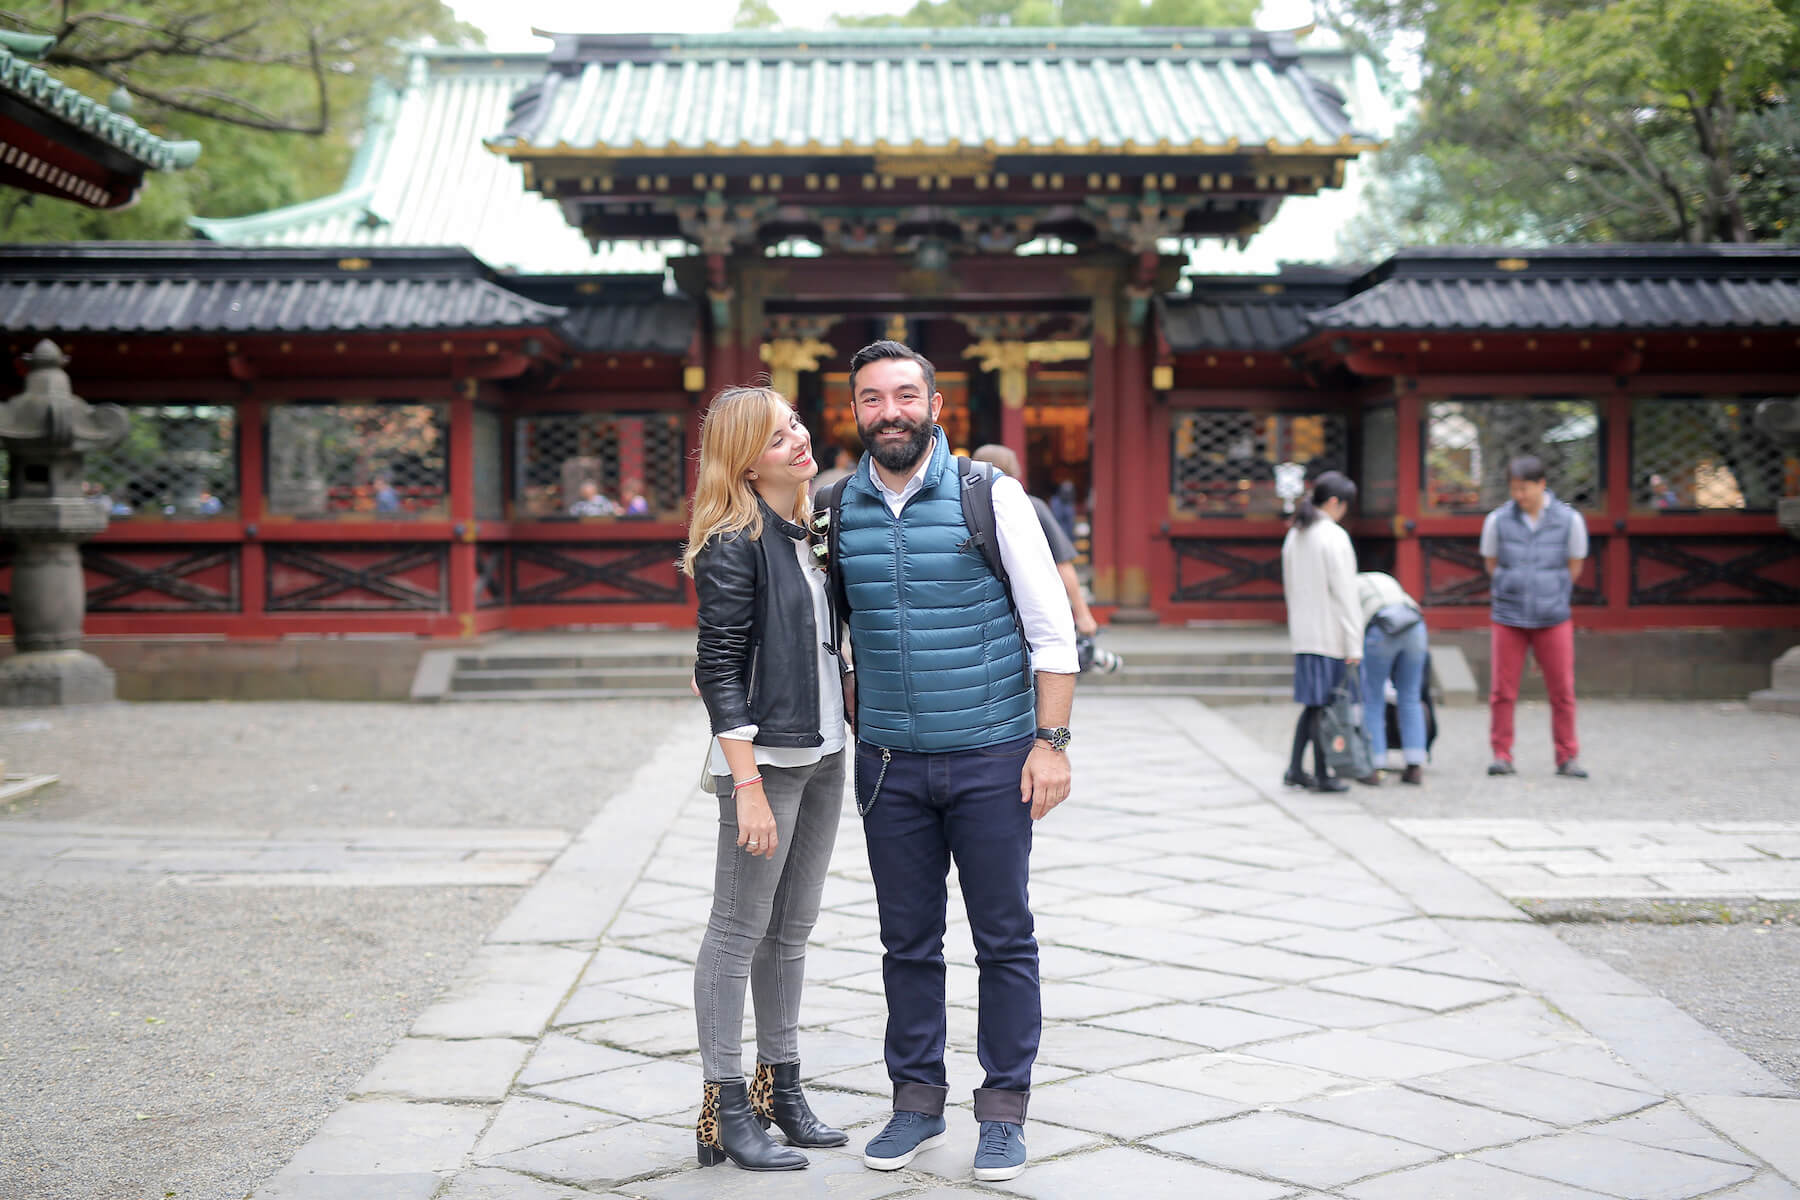 Couple standing in front of a temple in Tokyo, Japan